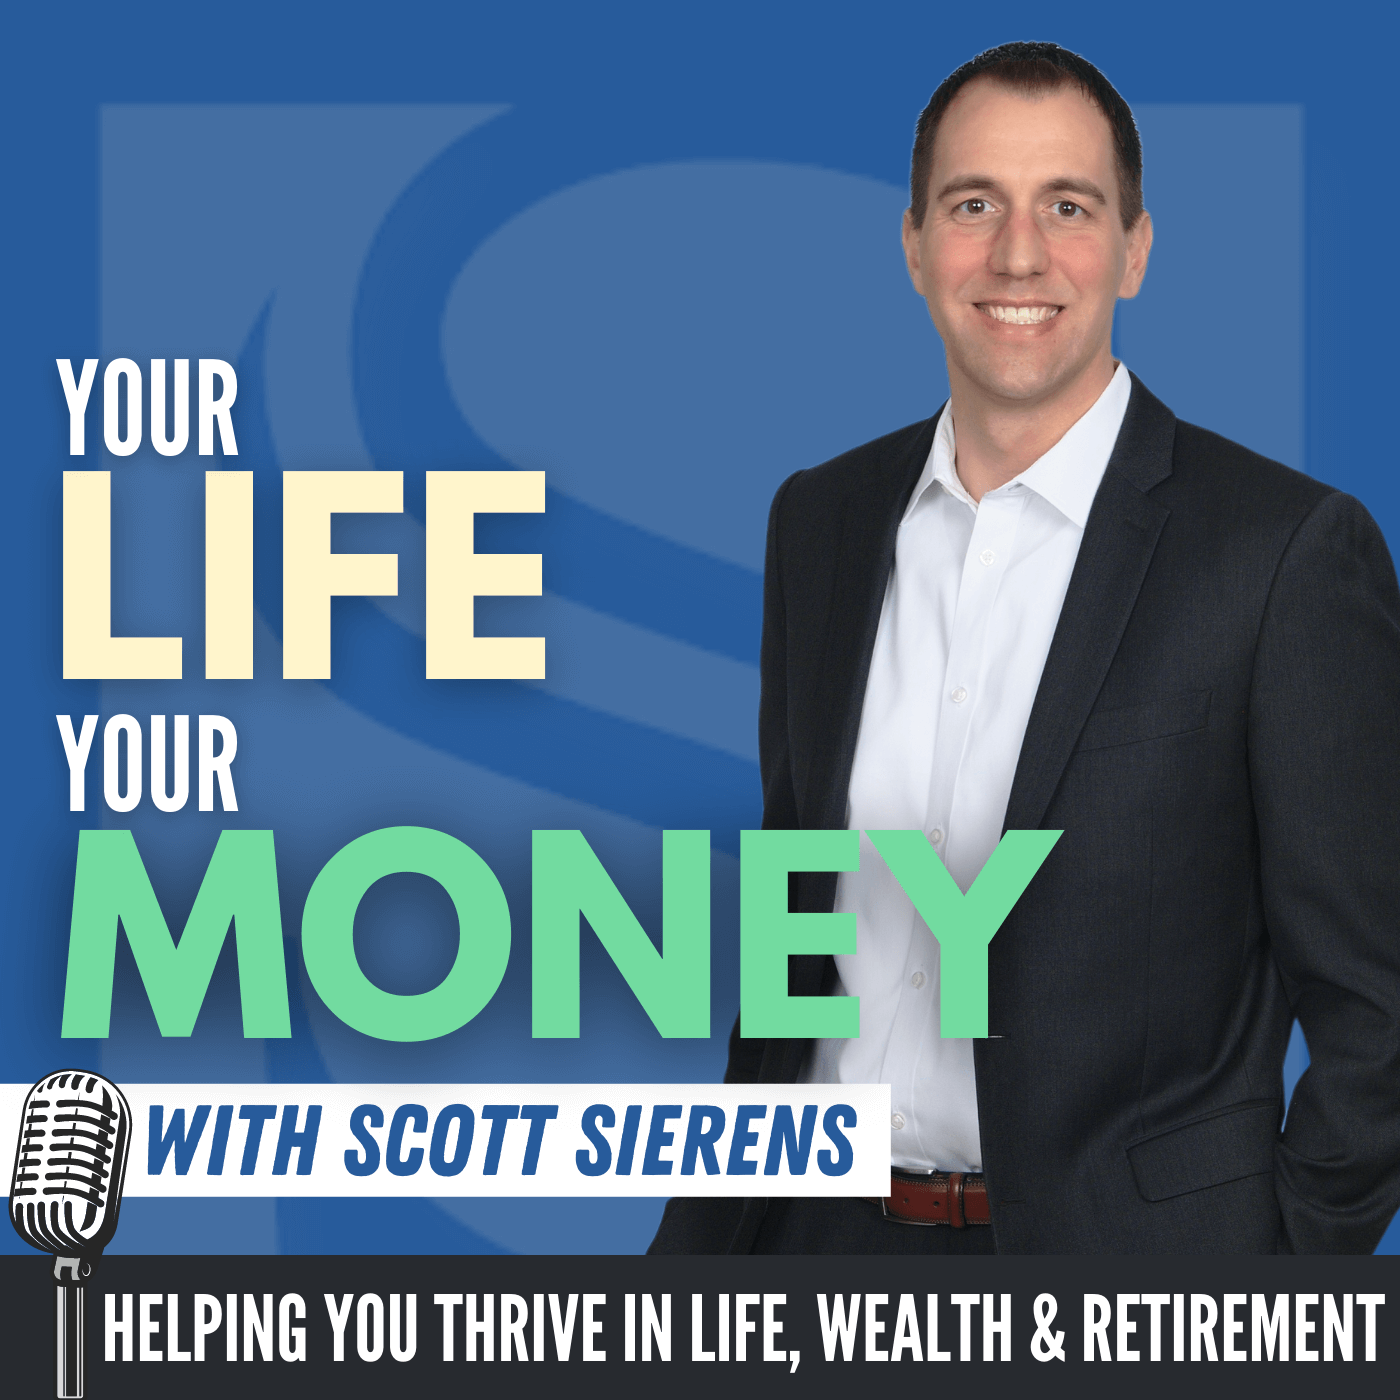 Your Life, Your Money with Scott Sierens